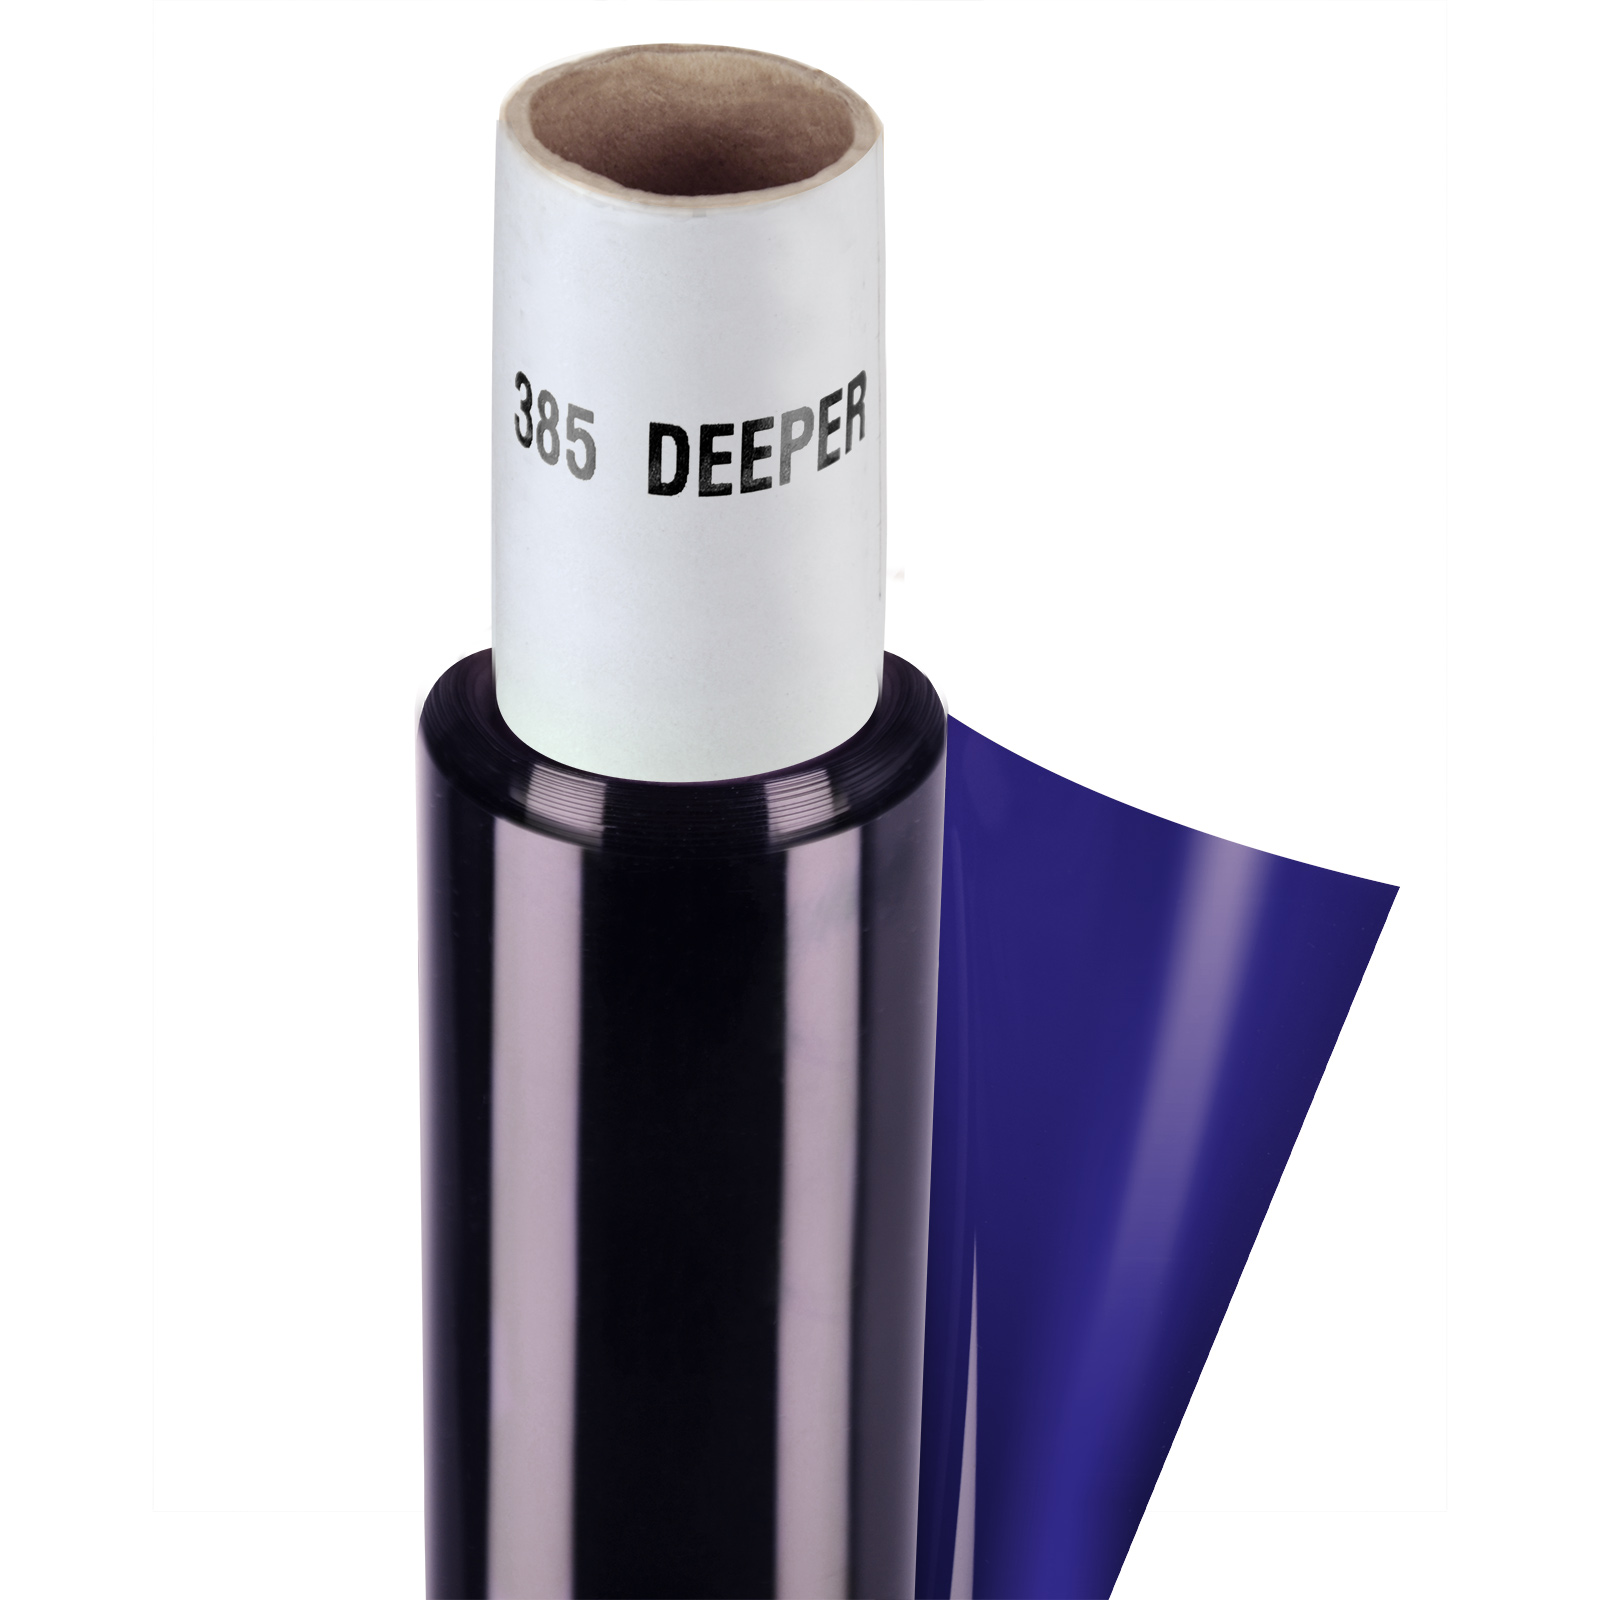 Светофильтр Chris James 385 Deeper Blue 7.62 м х 1.22 м